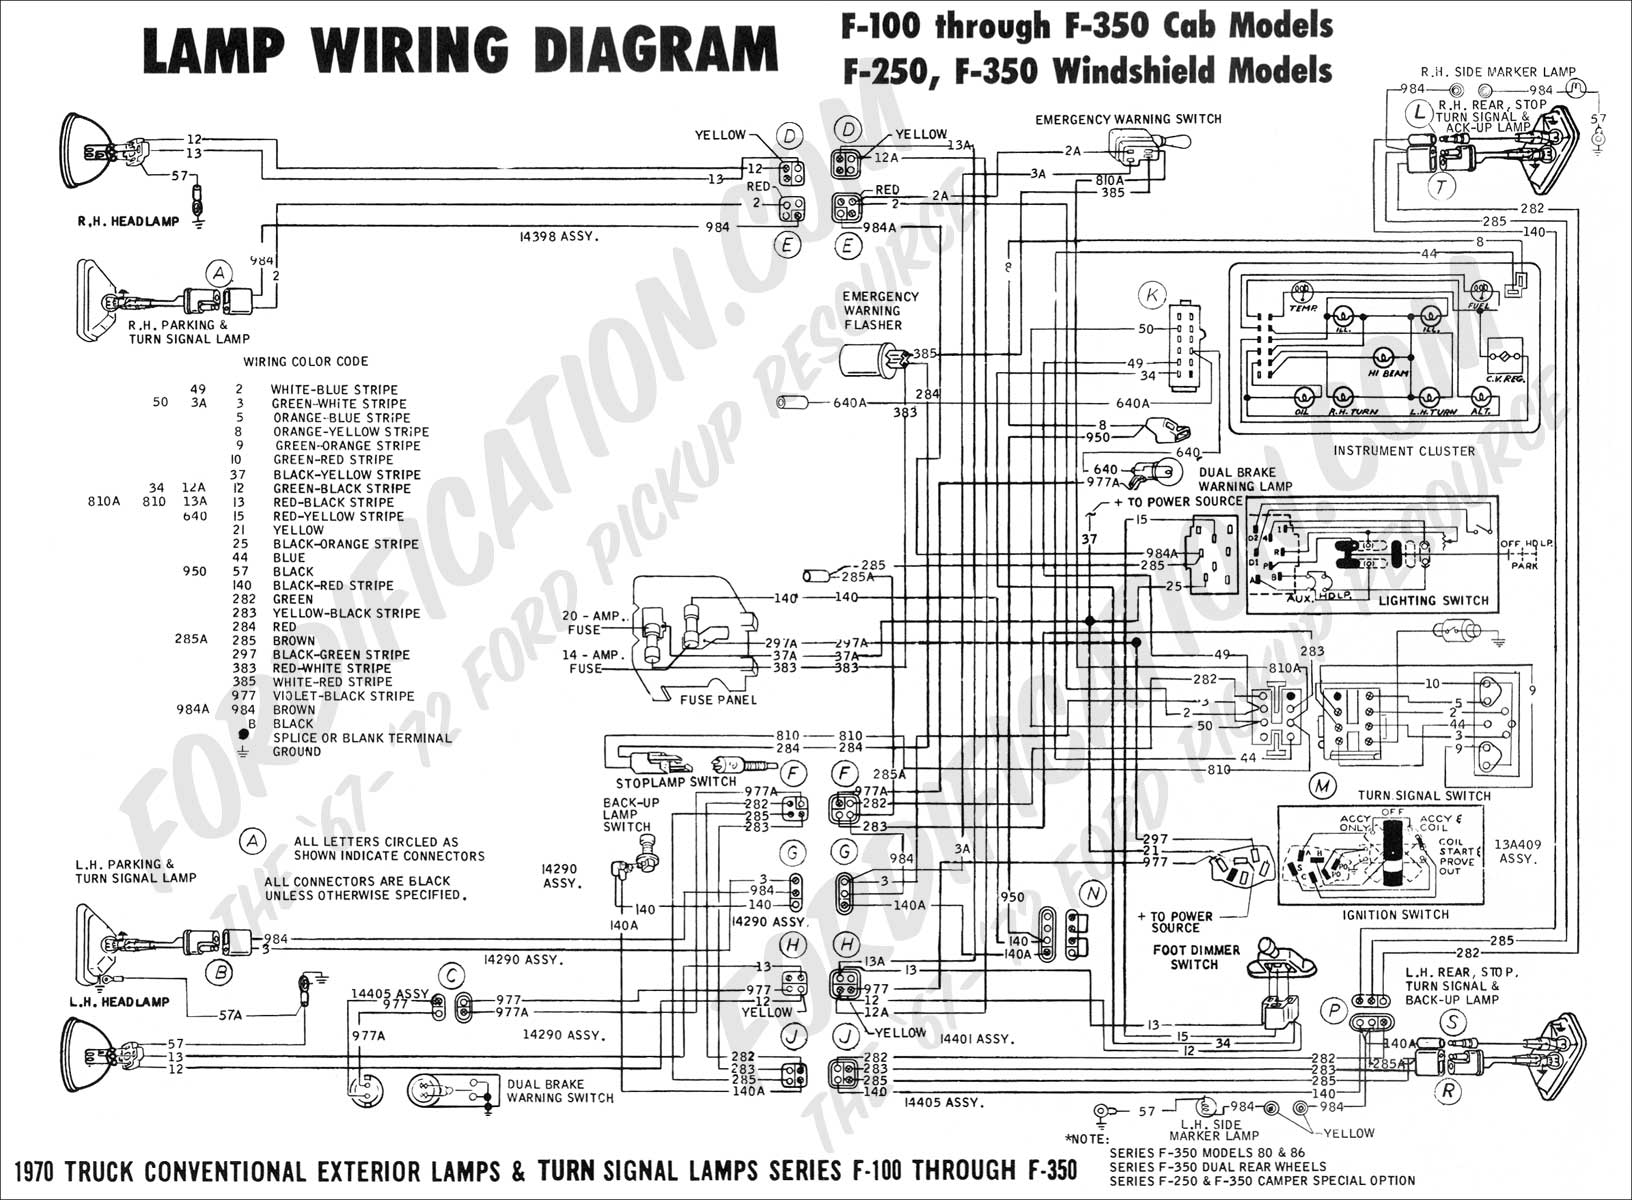 1968 chevy van wiring diagram with 1291890 Turn Signal Cam Wiring on 1967 Chevrolet Bel Air 4 Door moreover Electrical2 as well 1966 Chevy Ignition Switch Wiring Diagram further 1977 Pontiac Trans Am Factory Fresh Part 1 in addition Wiringt2.